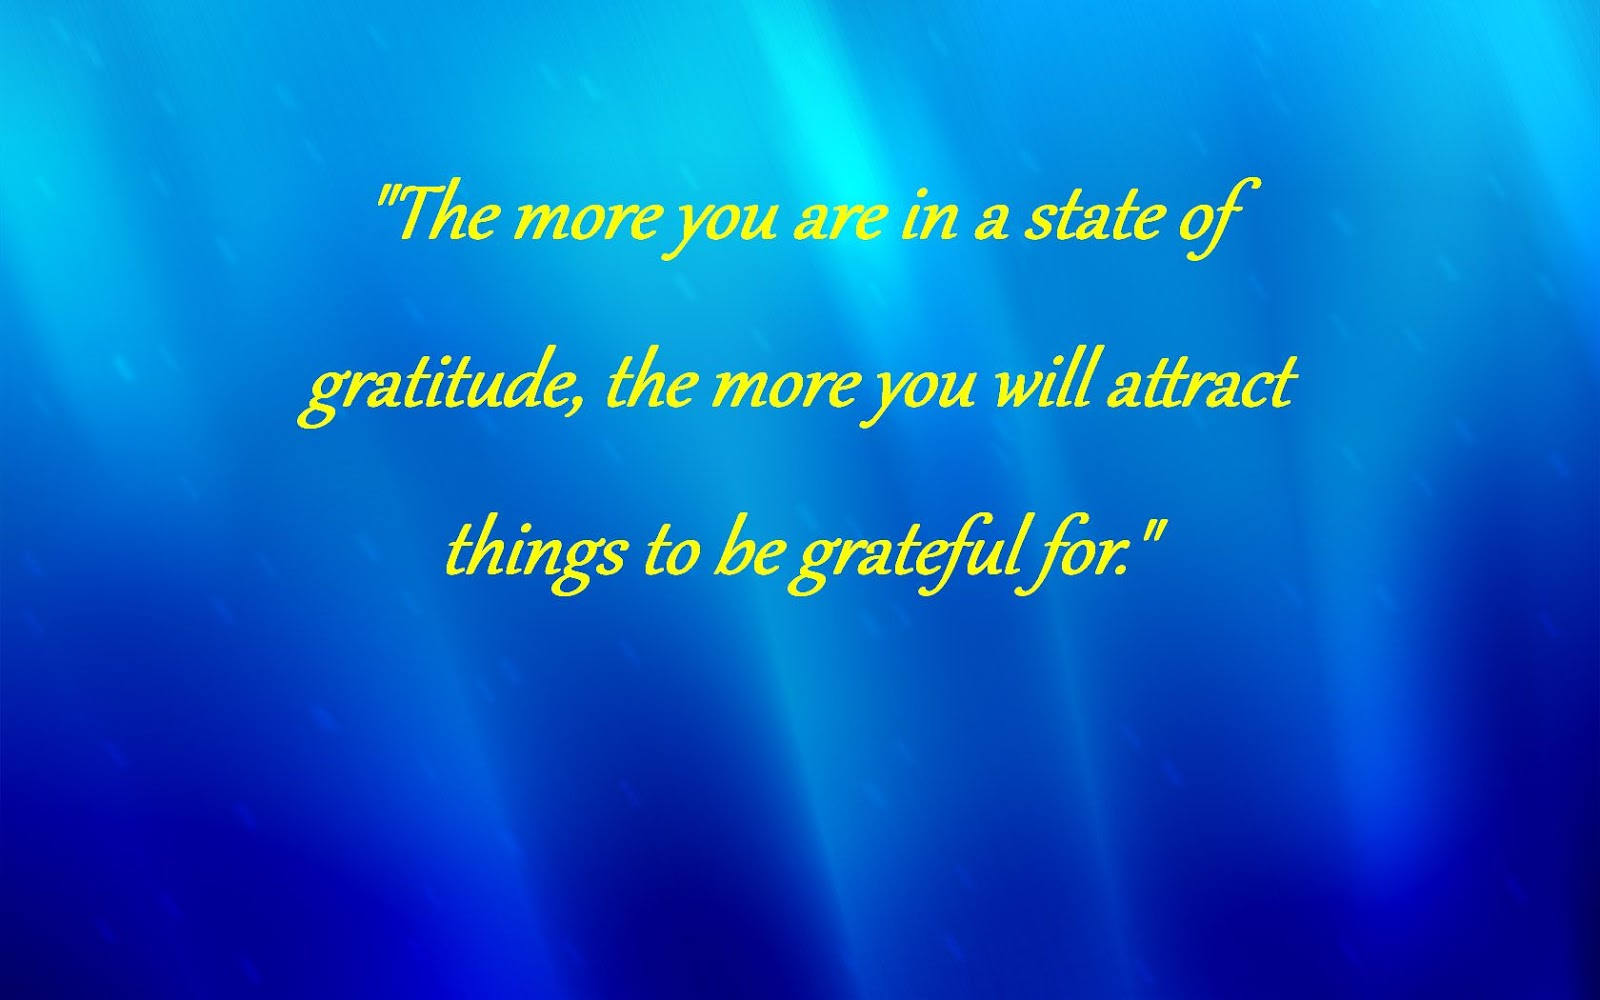 """ The More You Are In A State Of Gratitude, The More You Will Attract Things To Be Grateful For """